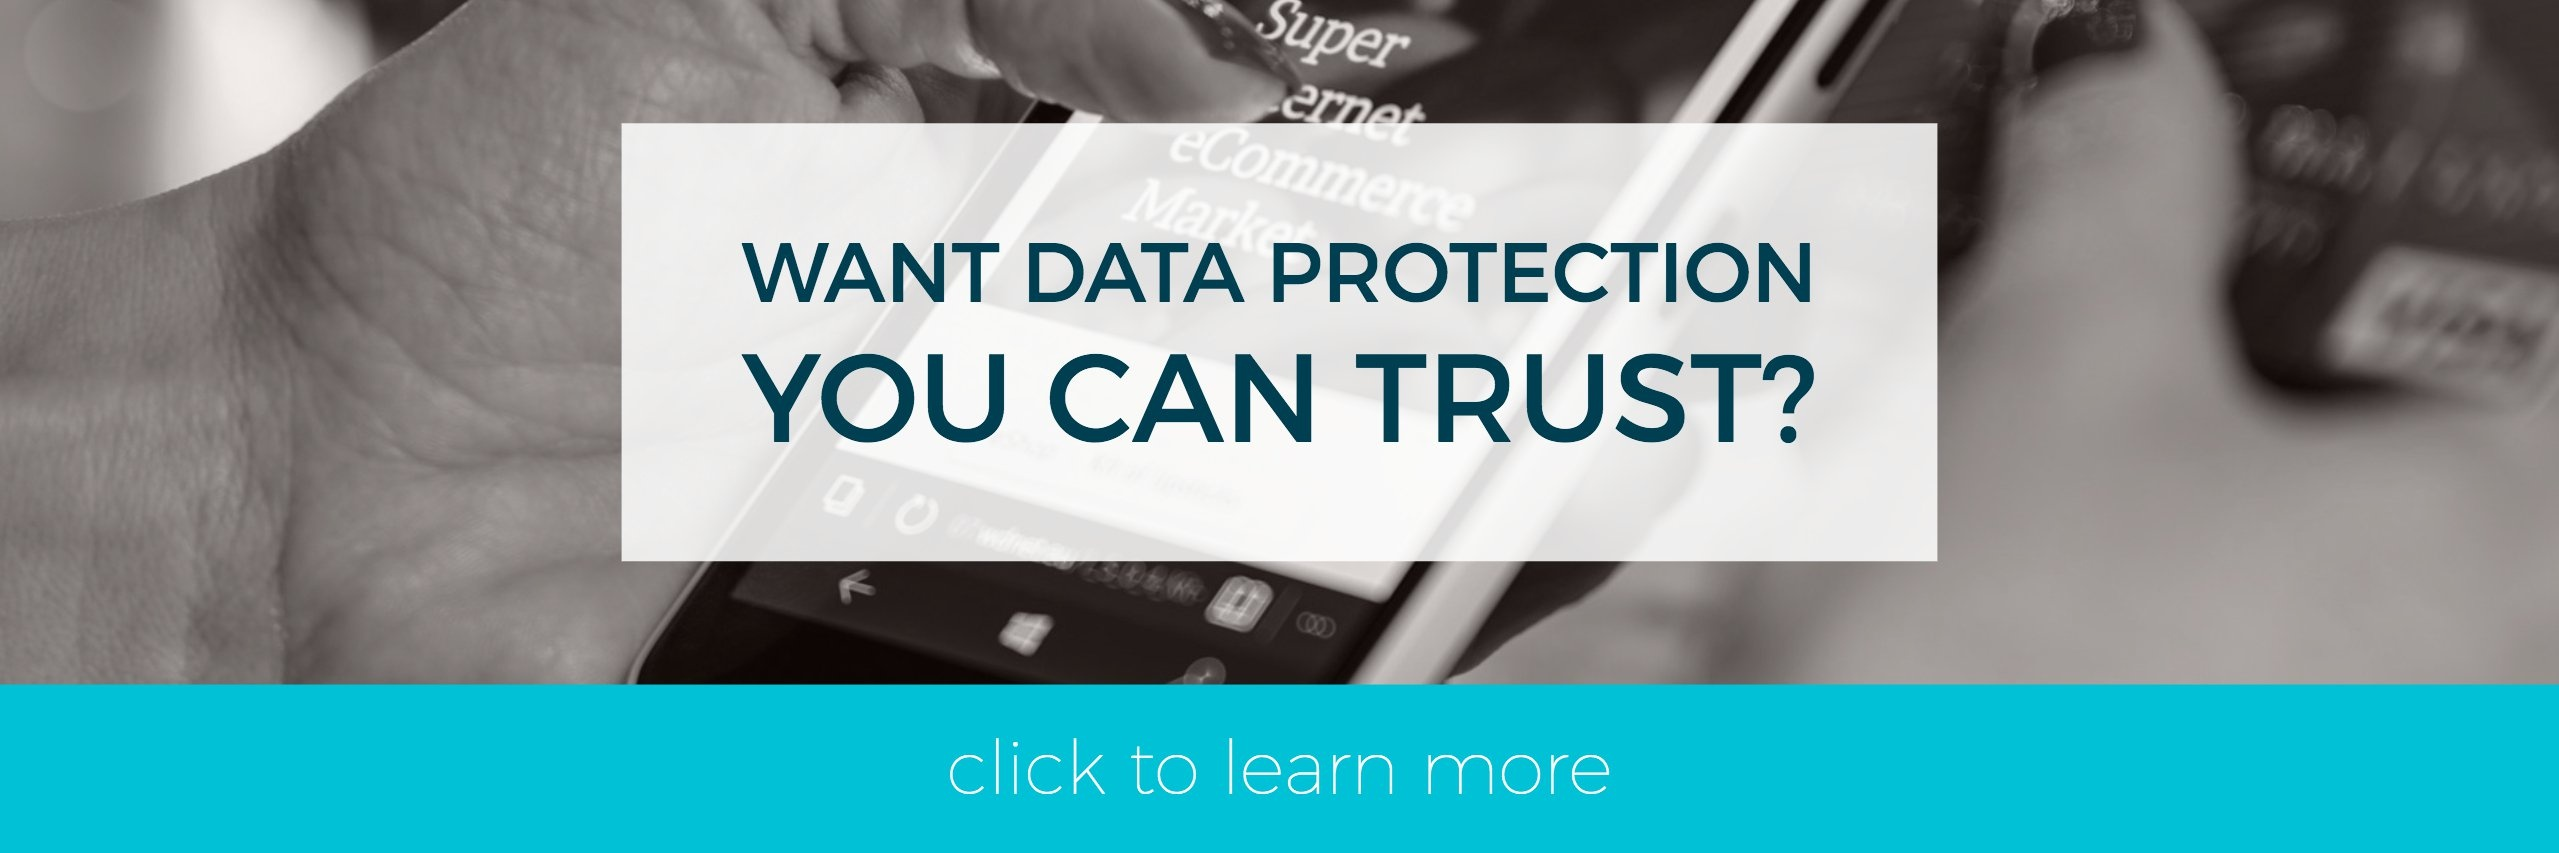 Want data protection you can trust? Click to learn more.